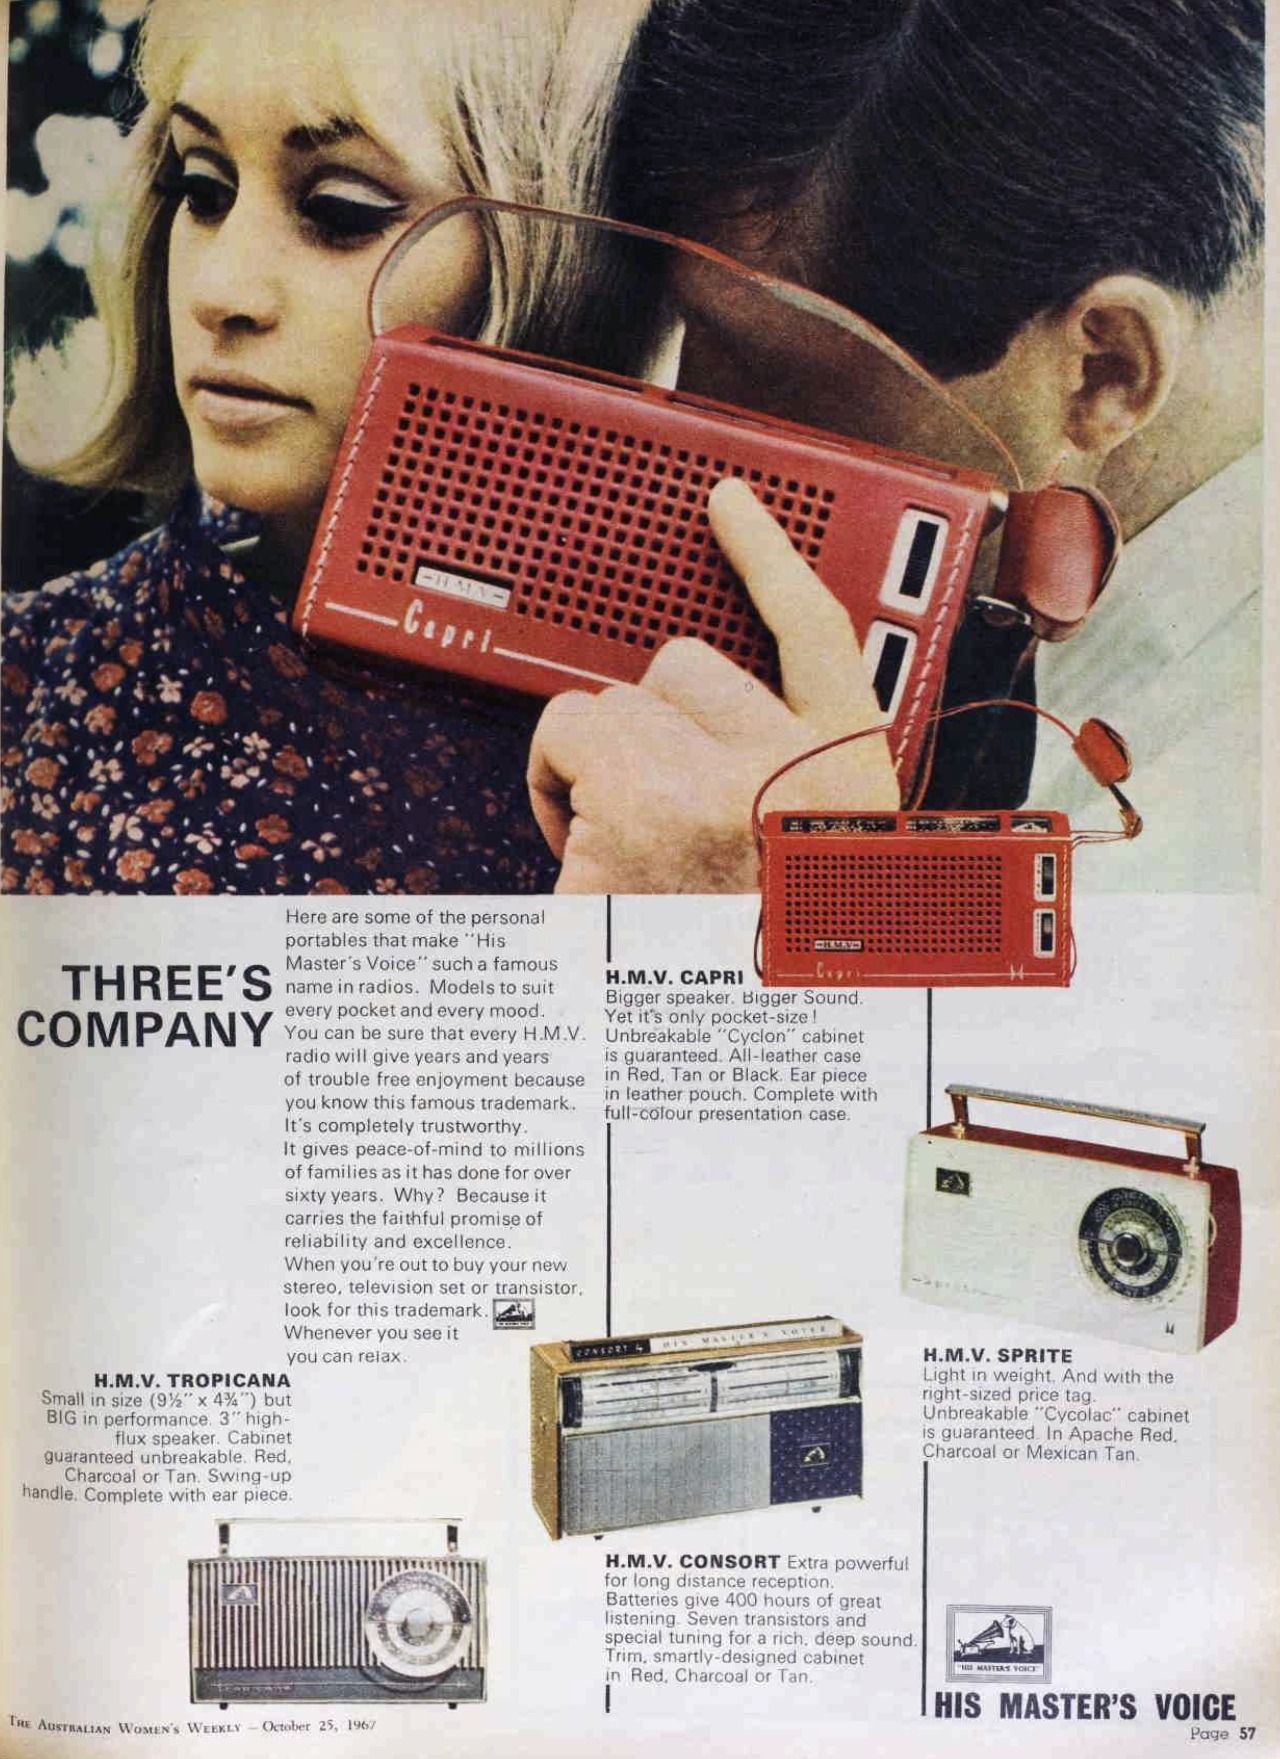 The Swinging Sixties : Photo~My first radio was just like the one in the red case!~